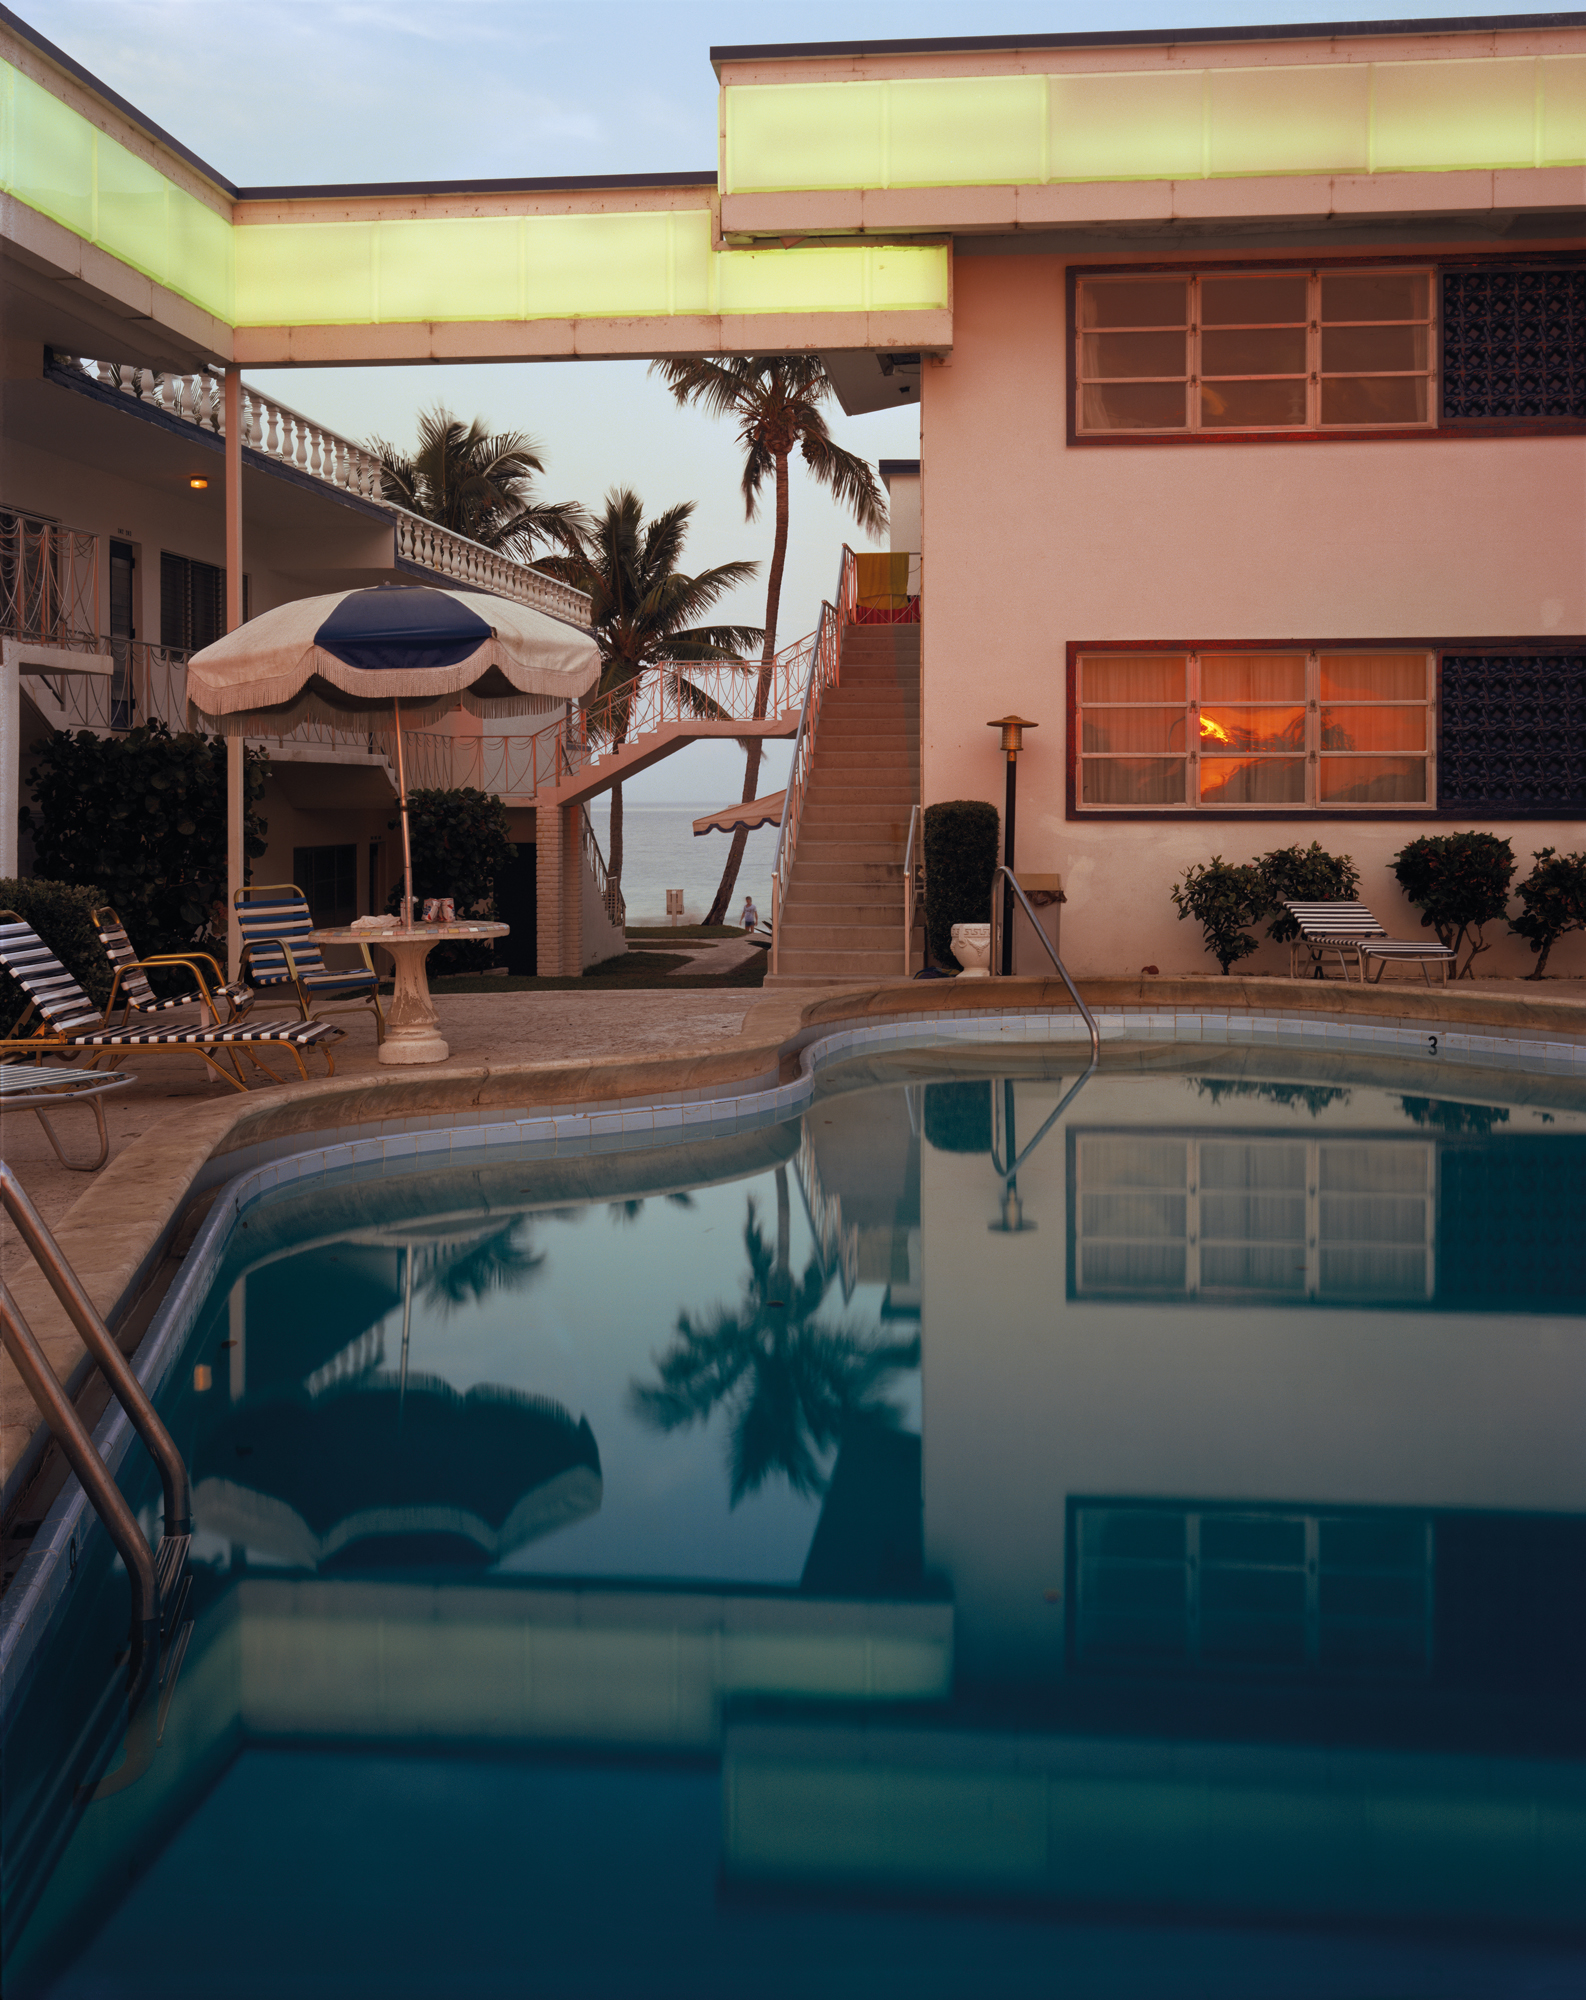 Florida,  1978. Courtesy and Copyright of Joel Meyerowitz